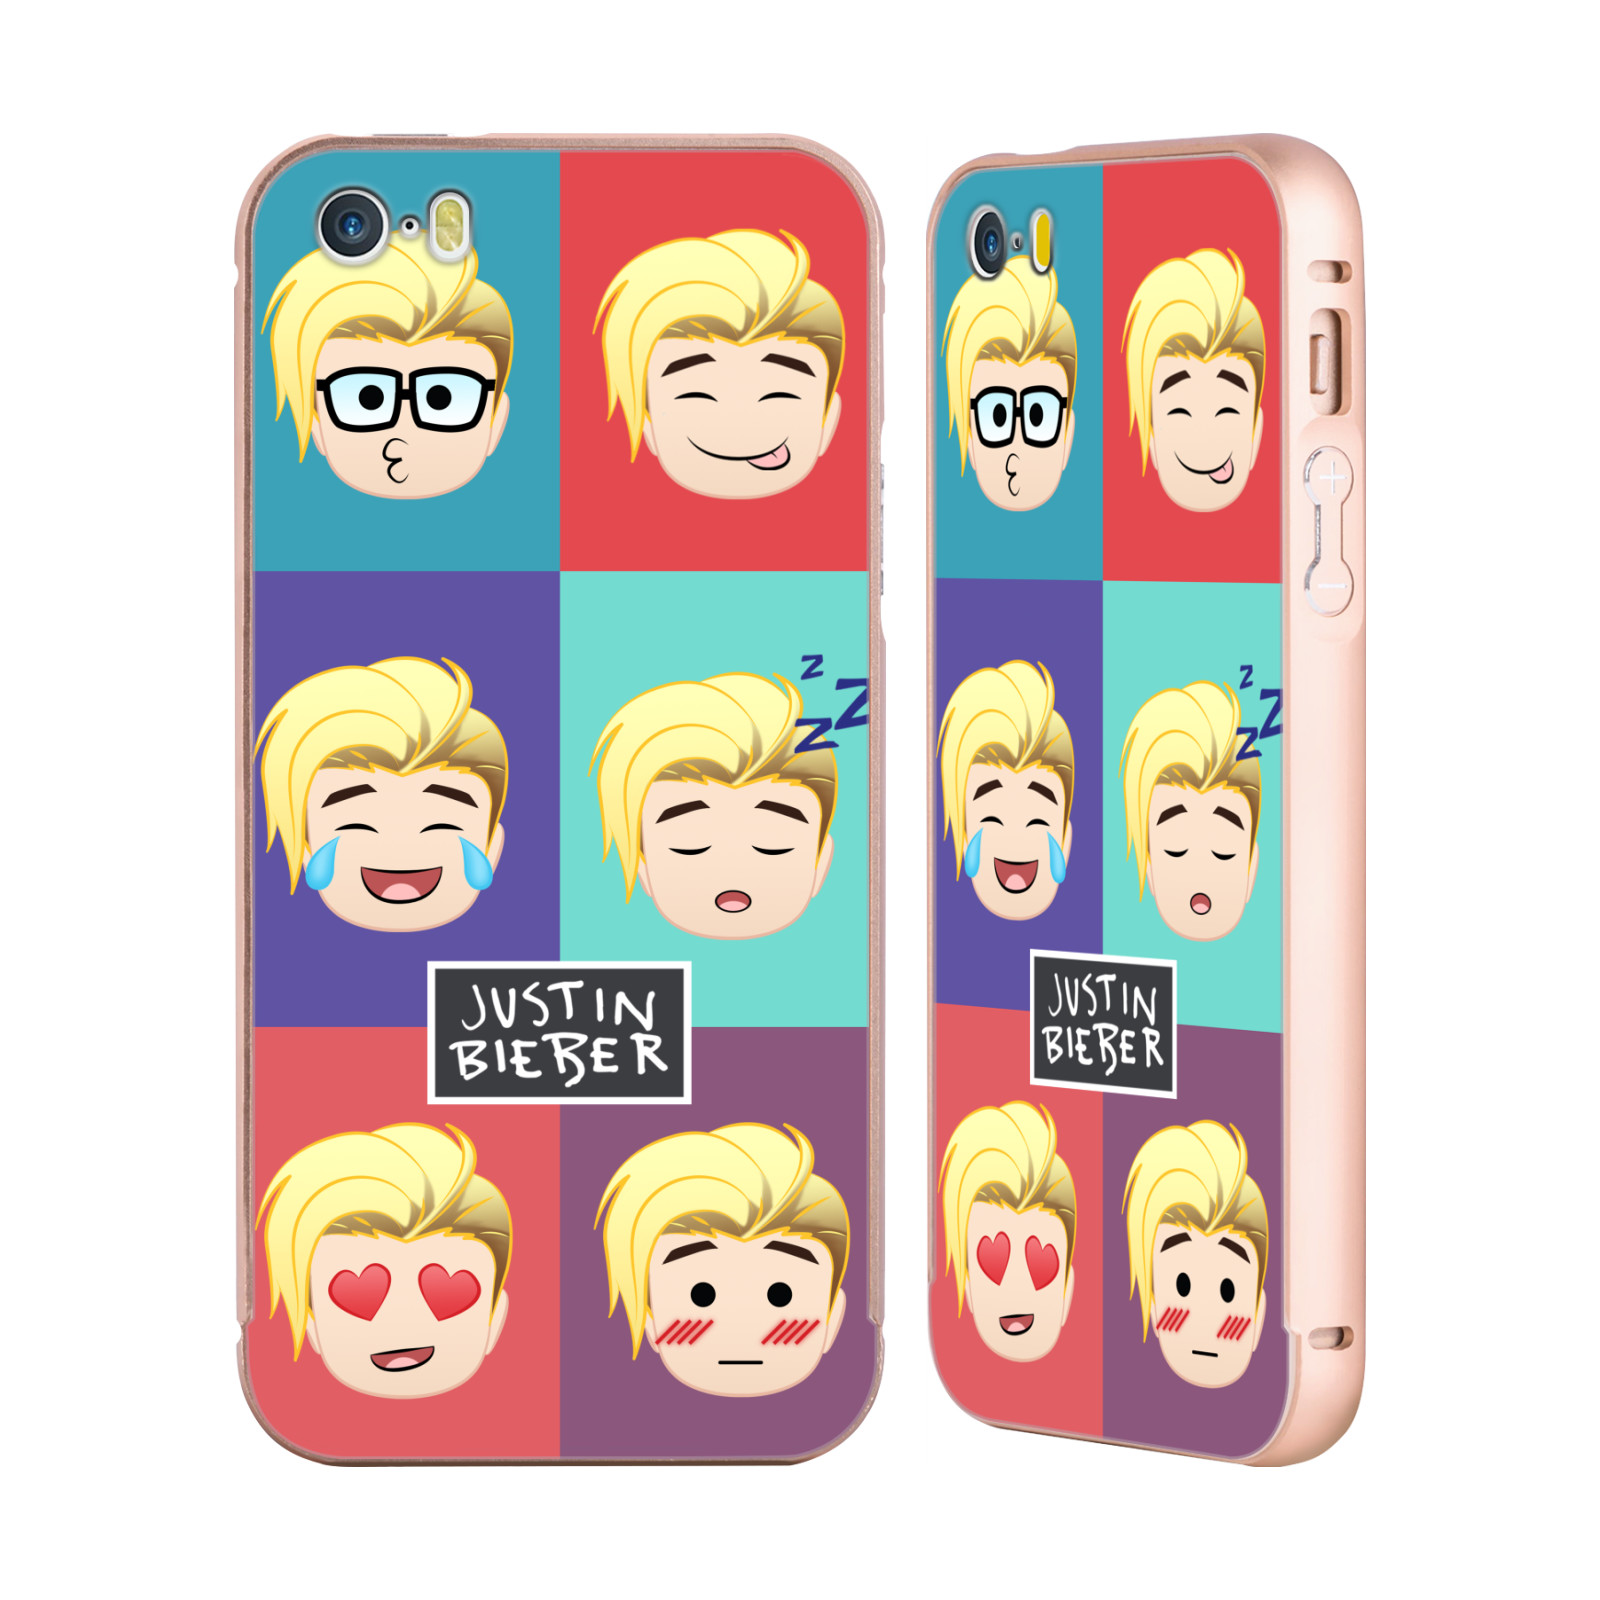 OFFICIAL-JUSTIN-BIEBER-JUSTMOJIS-GOLD-BUMPER-SLIDER-CASE-FOR-APPLE-iPHONE-PHONES